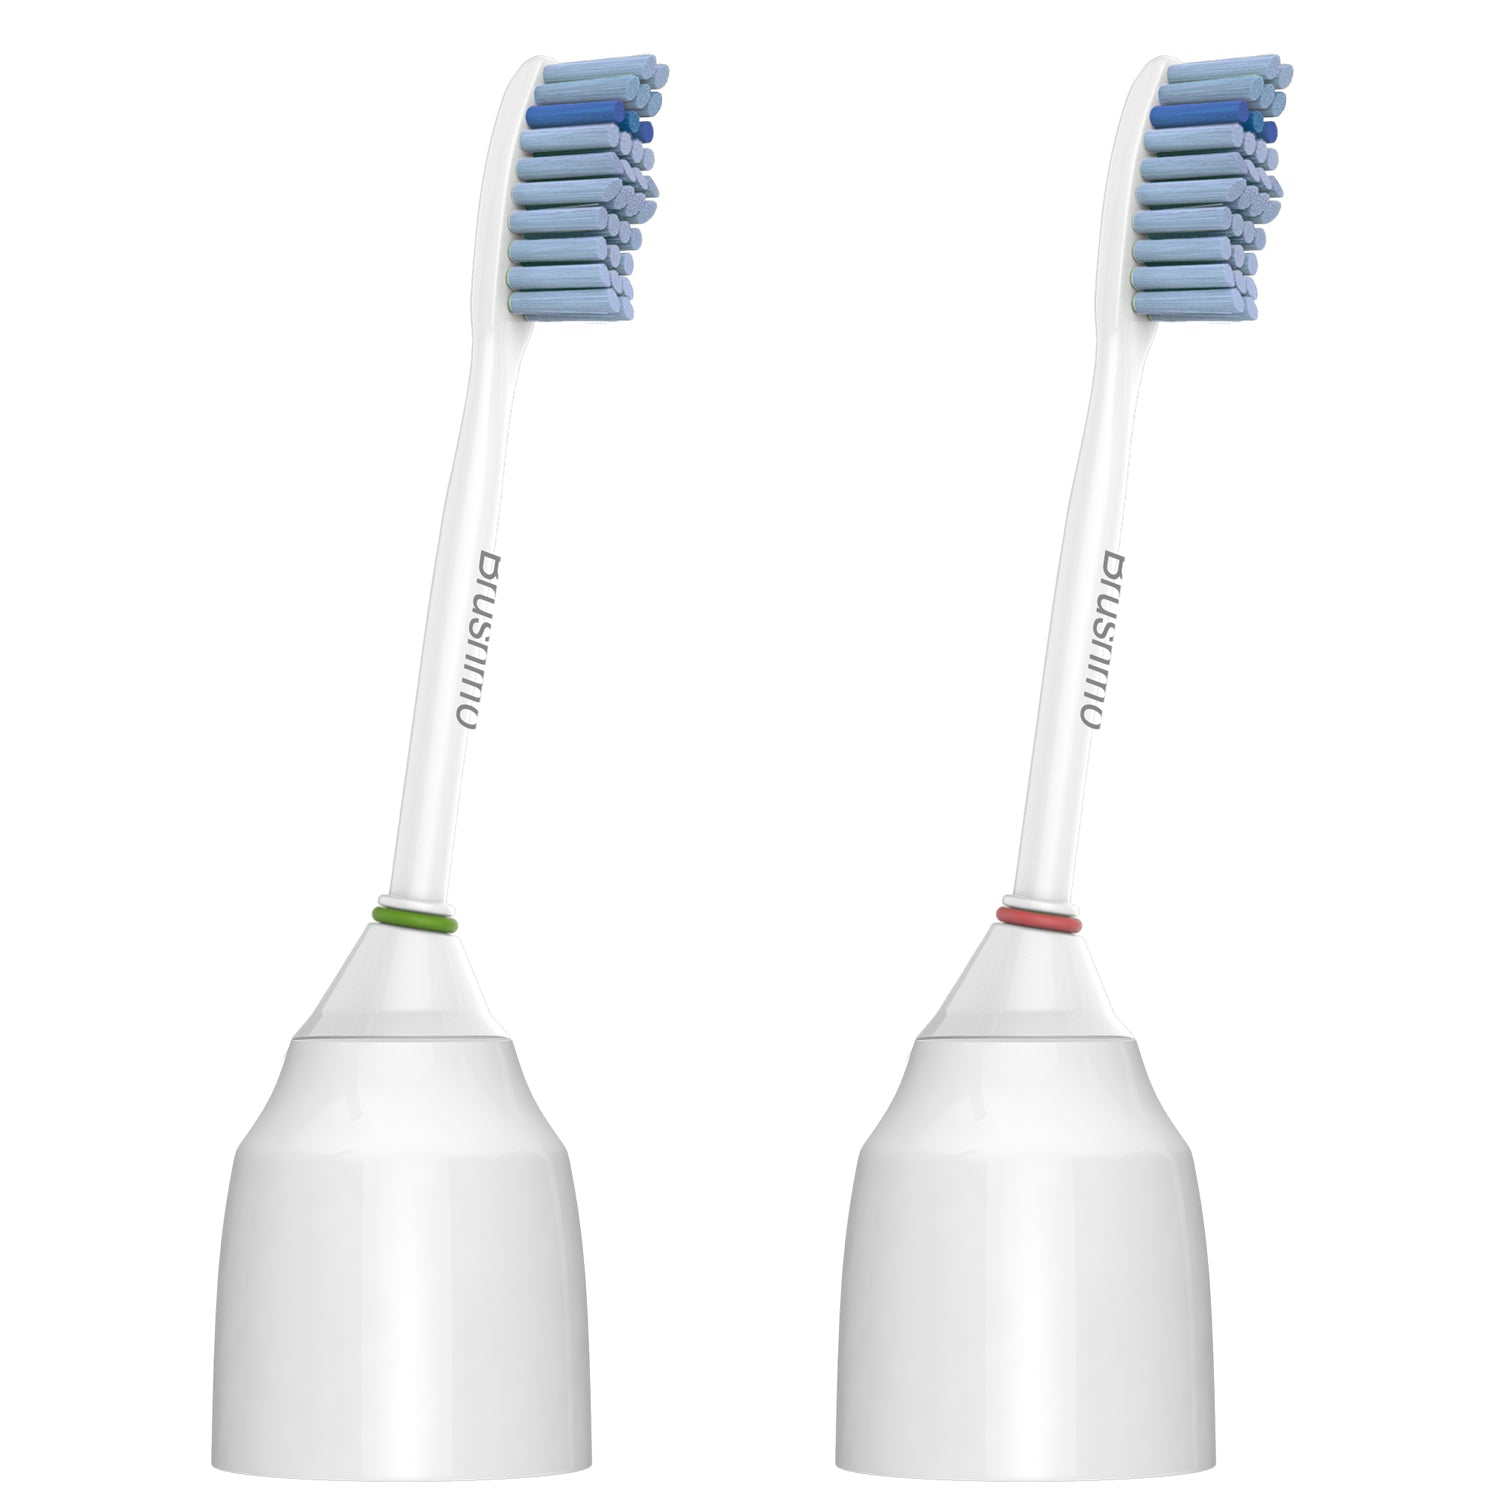 Brushmo sensitive replacement toothbrush heads for Philips Sonicare HX7052 E-SERIES